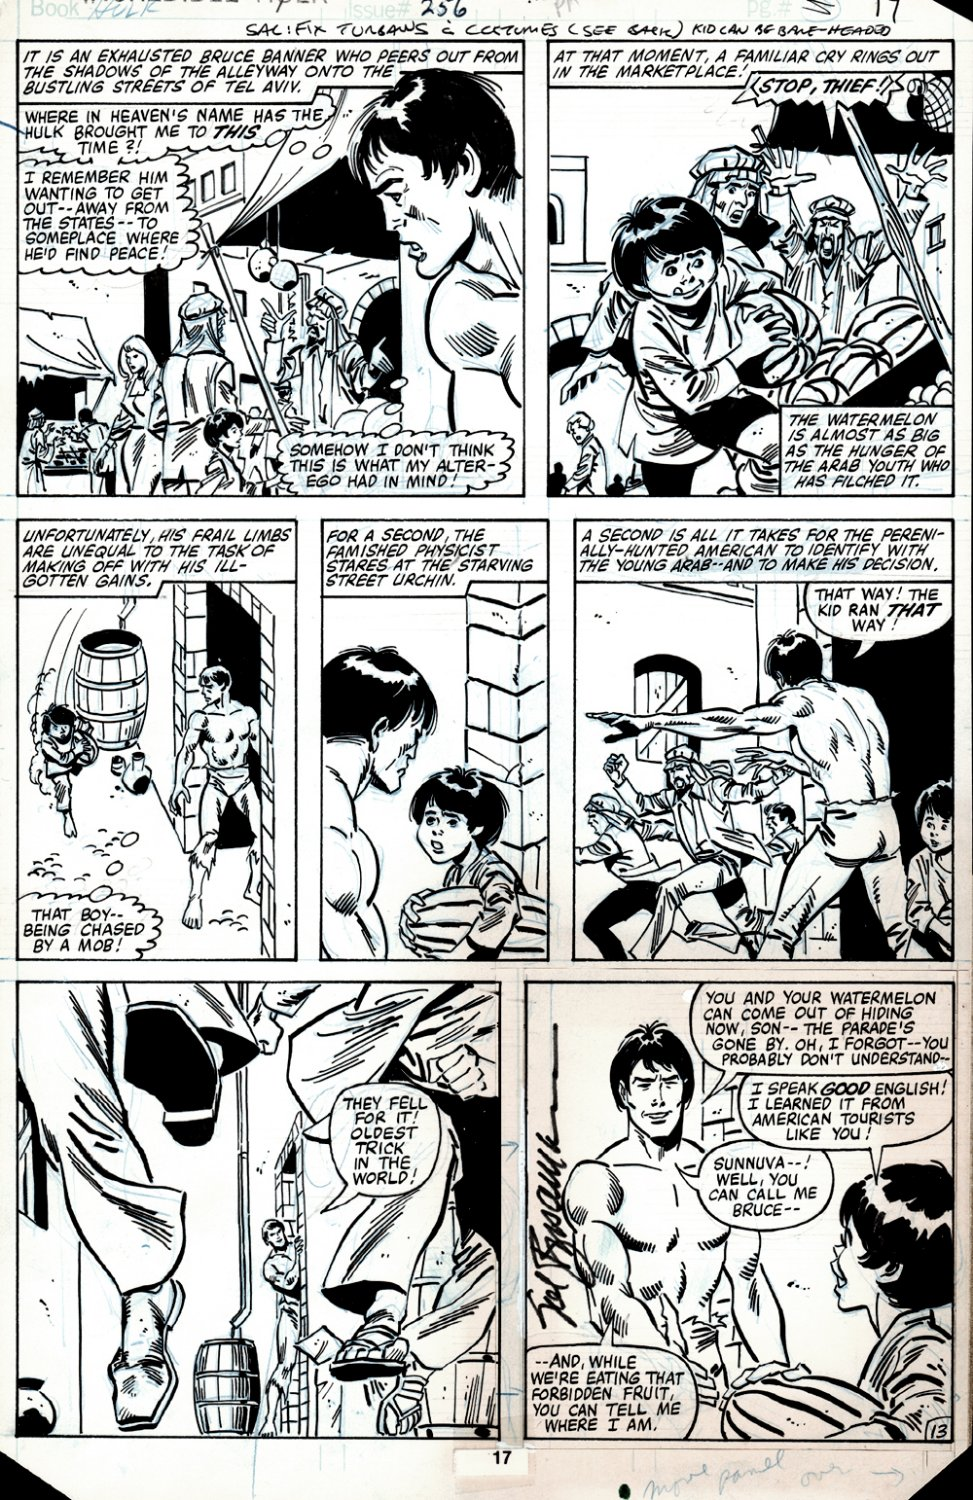 Incredible Hulk #256 p 13 (BRUCE BANNER MEETS YOUNG BOY WHO GETS BLOWN UP!) 1980